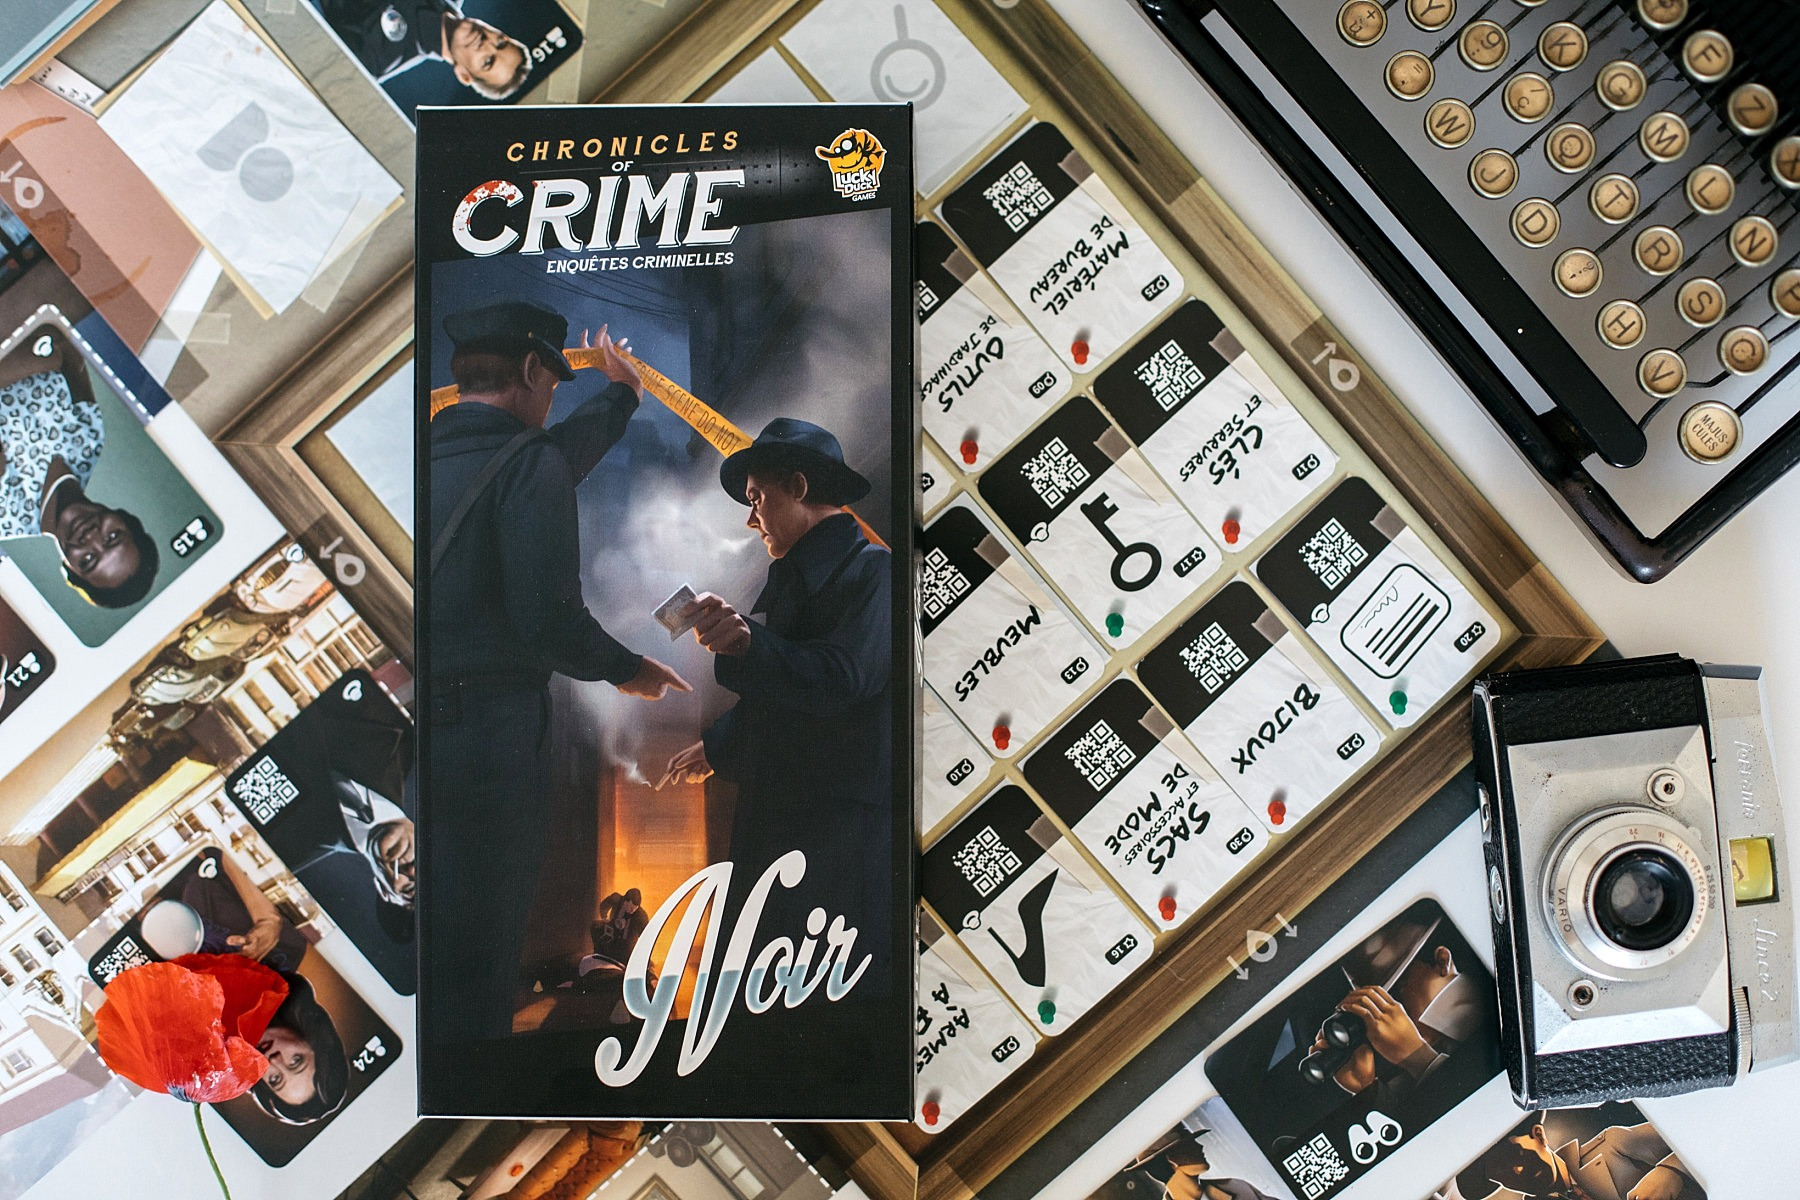 Chronicles of crime lucky duck games